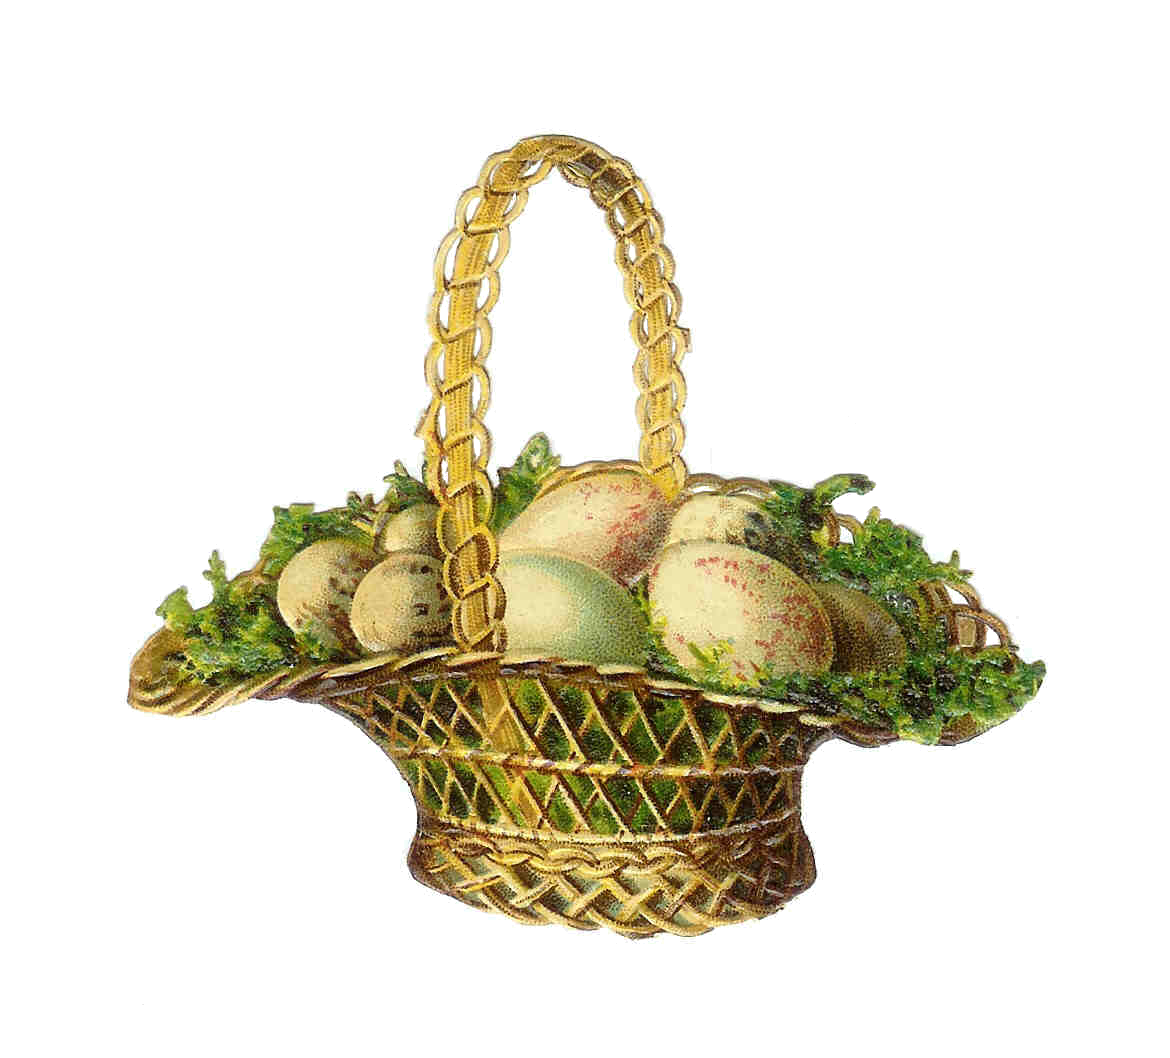 clip art for easter baskets - photo #32